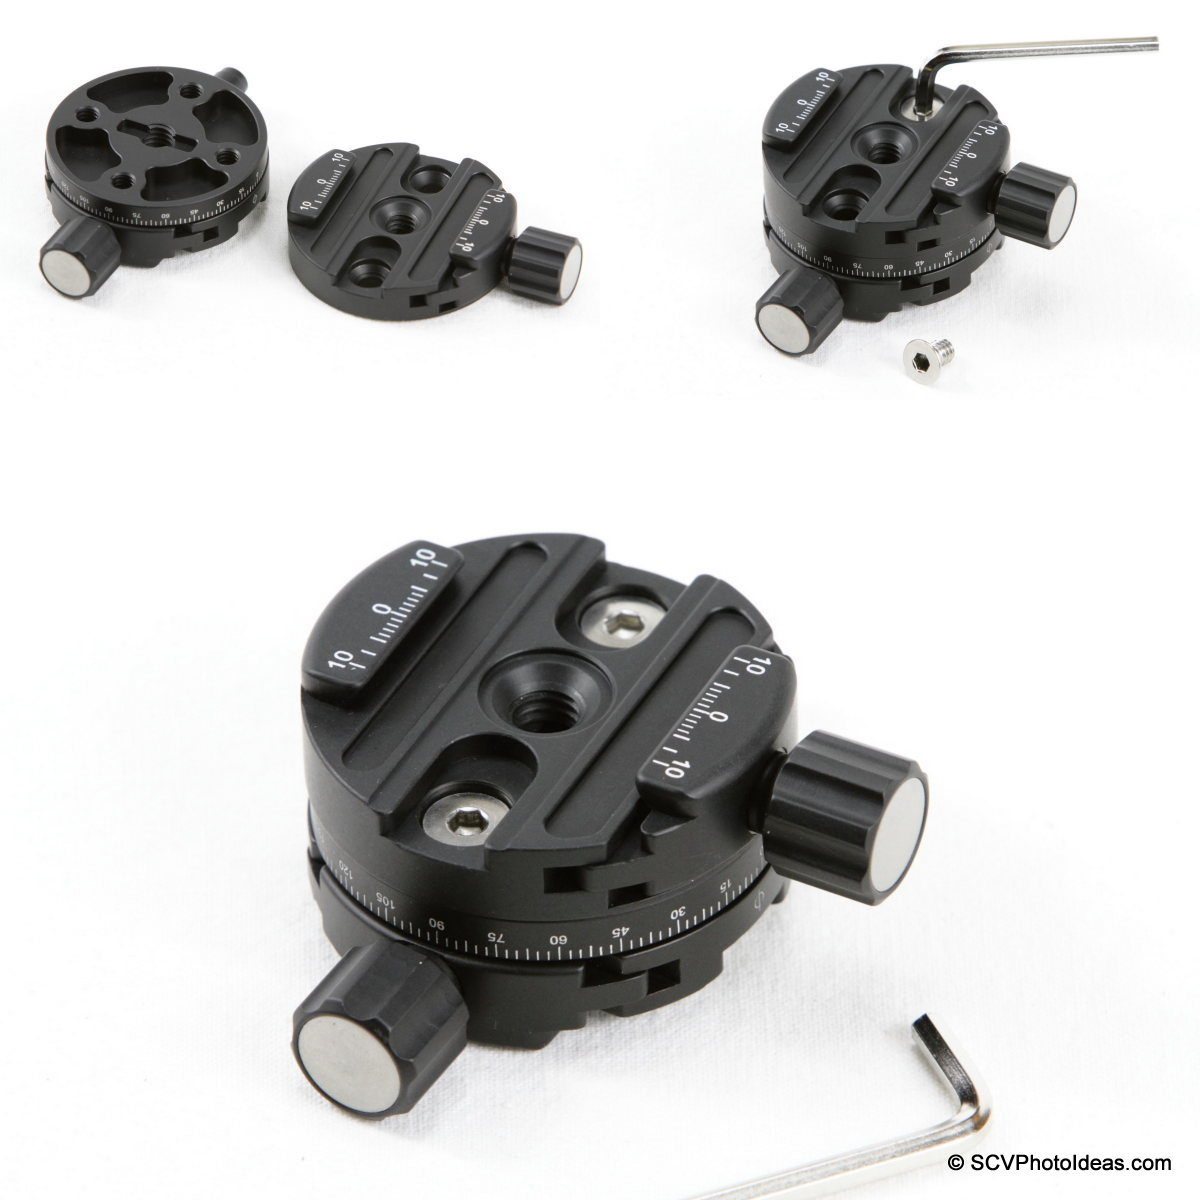 Sunwayfoto DDH-03 PC & DDY-58 QR Clamp mounting sequence